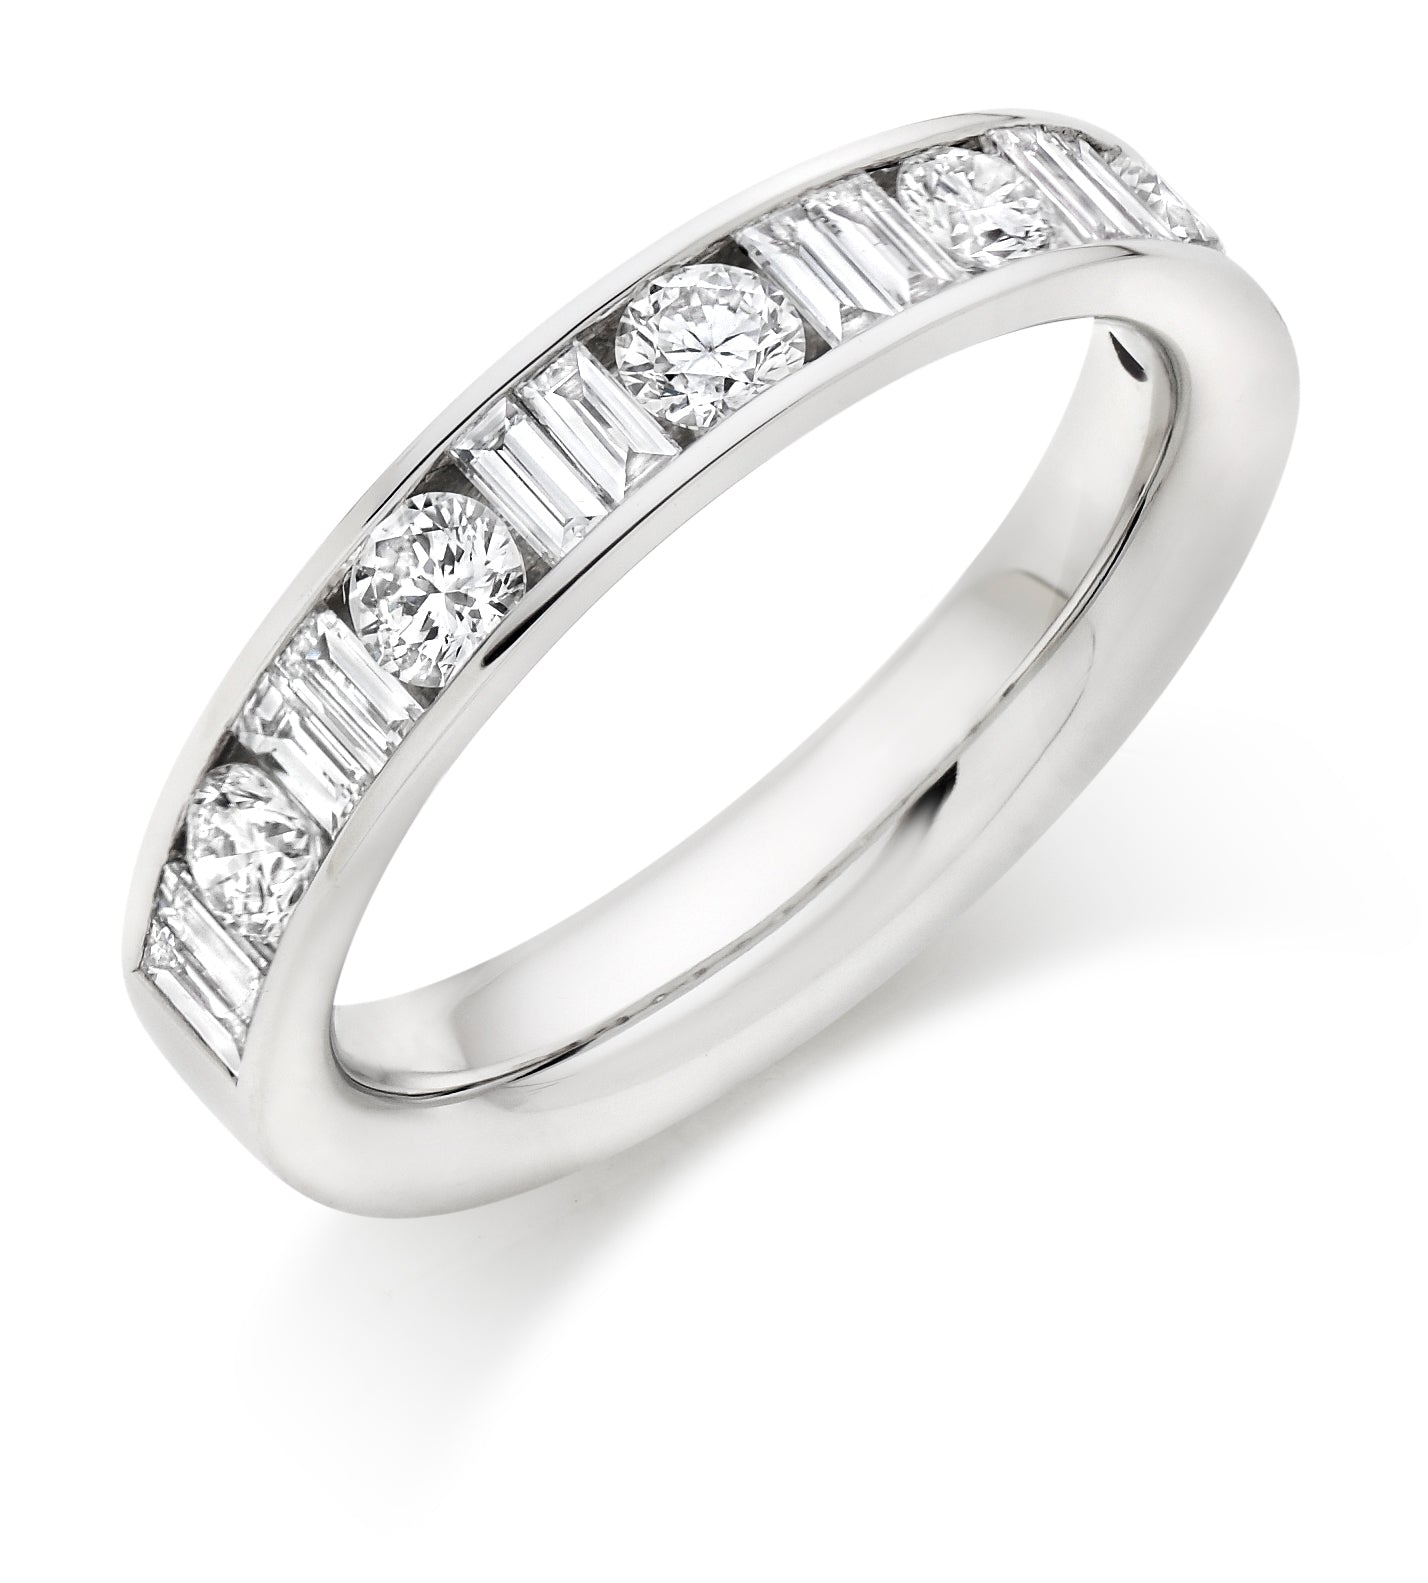 1ct Round Brilliant Cut and Baguette Cut Diamonds Wedding Ring - (Home Try-On)